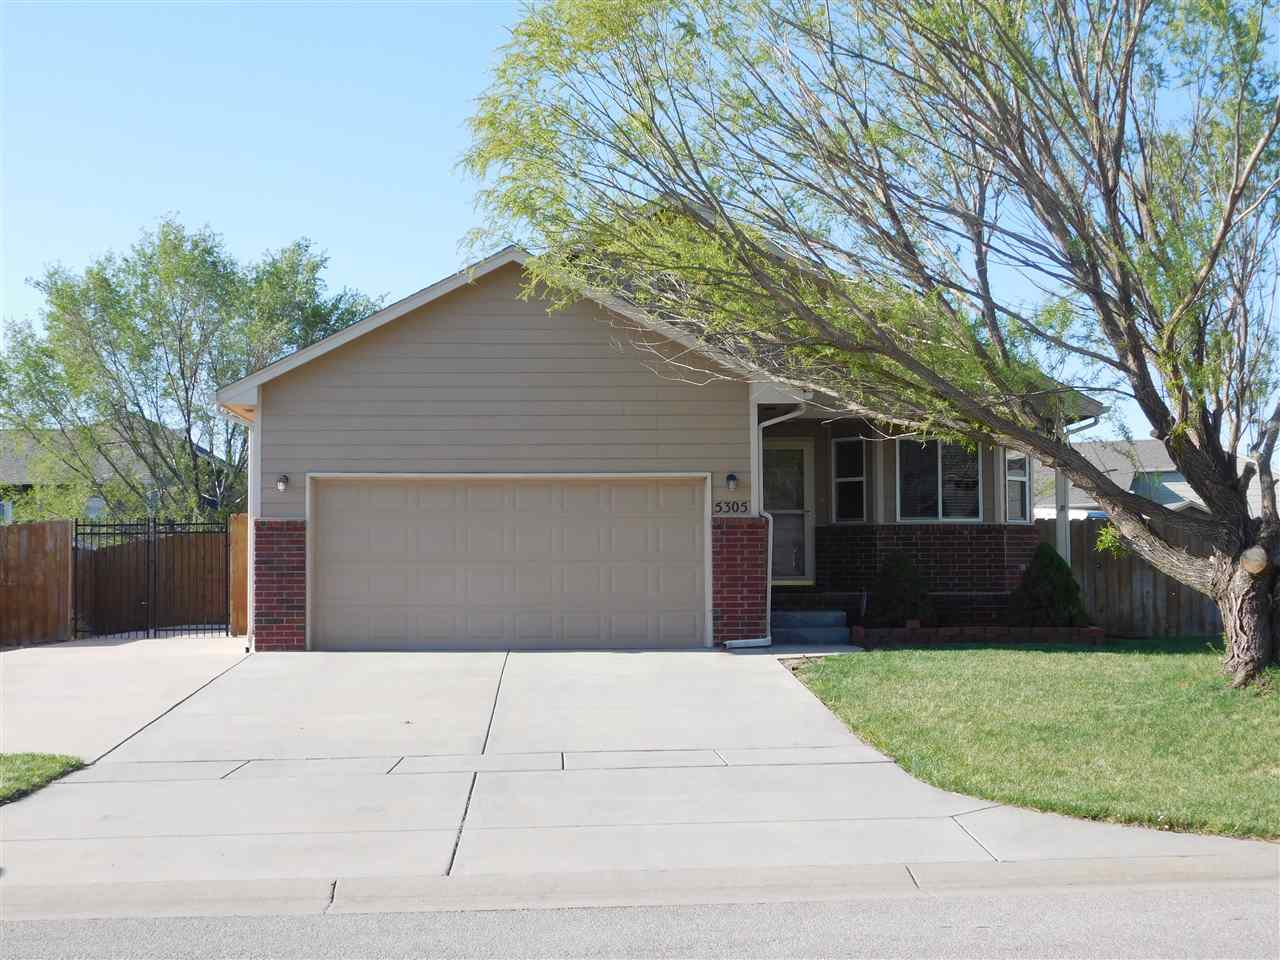 BRAND NEW ON THE MARKET This 3 bedroom, 2 bath home is just waiting for you to buy. The 1,748 sq ft